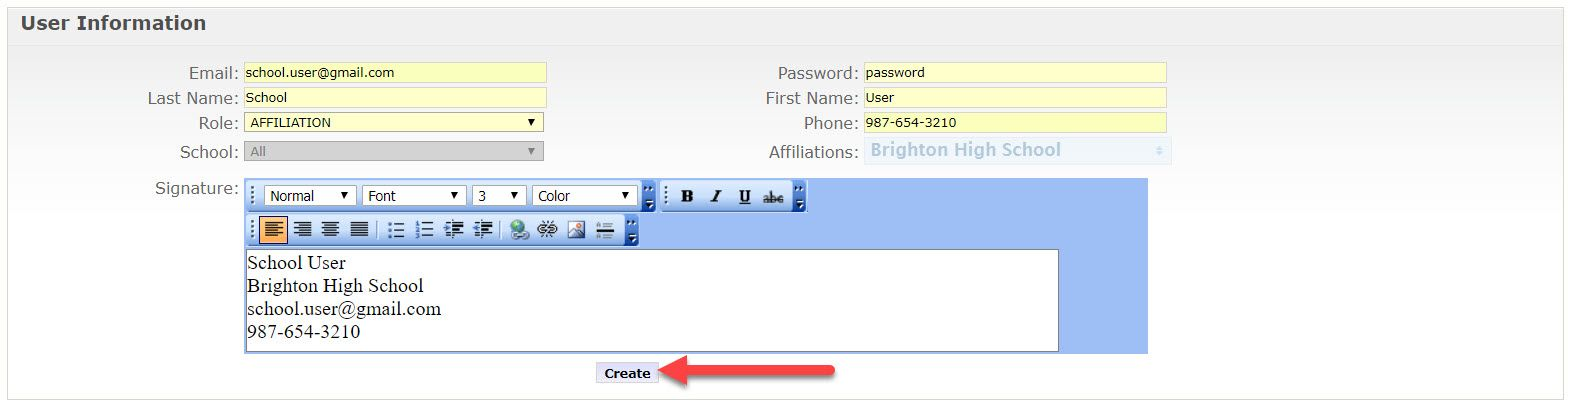 The Add User page is displayed showing the fields mentioned above. An arrow points to the create button at the bottom of the signature field.